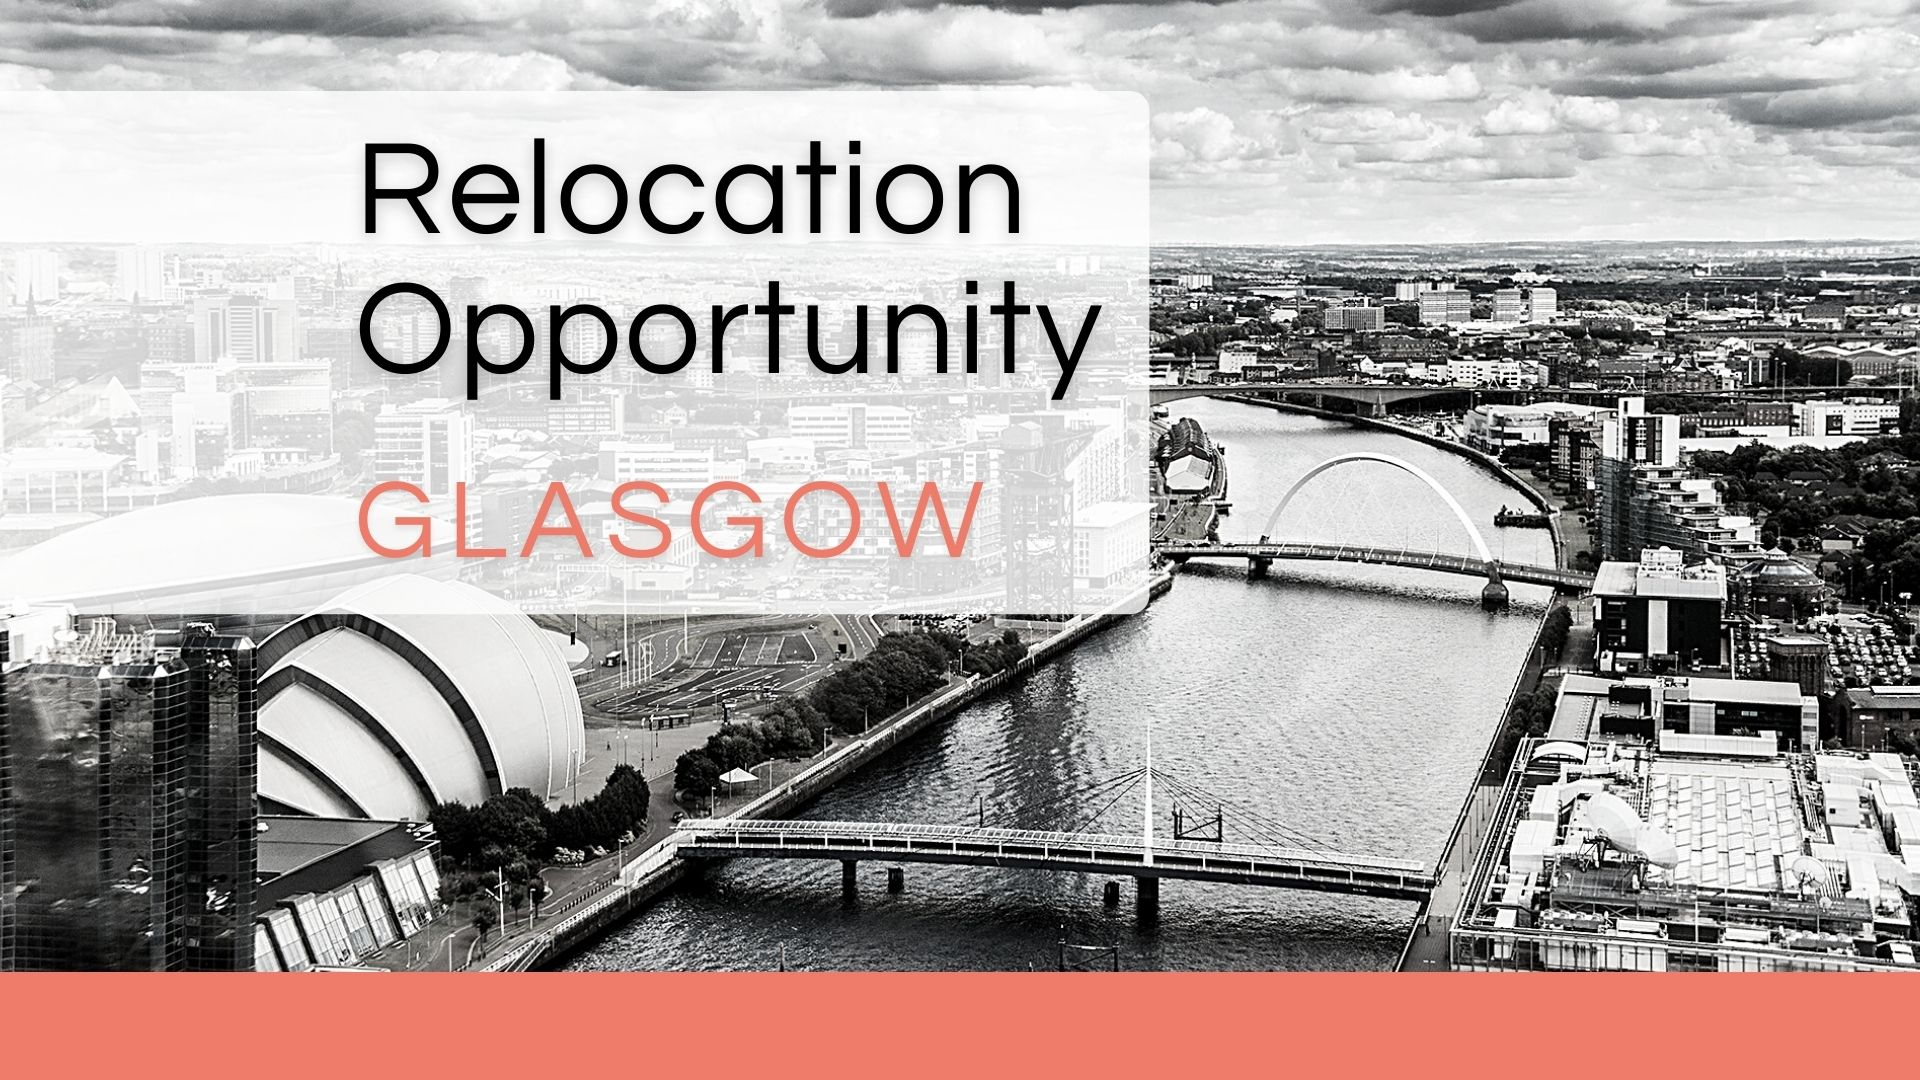 OPPORTUNITIES TO RELOCATE TO GLASGOW